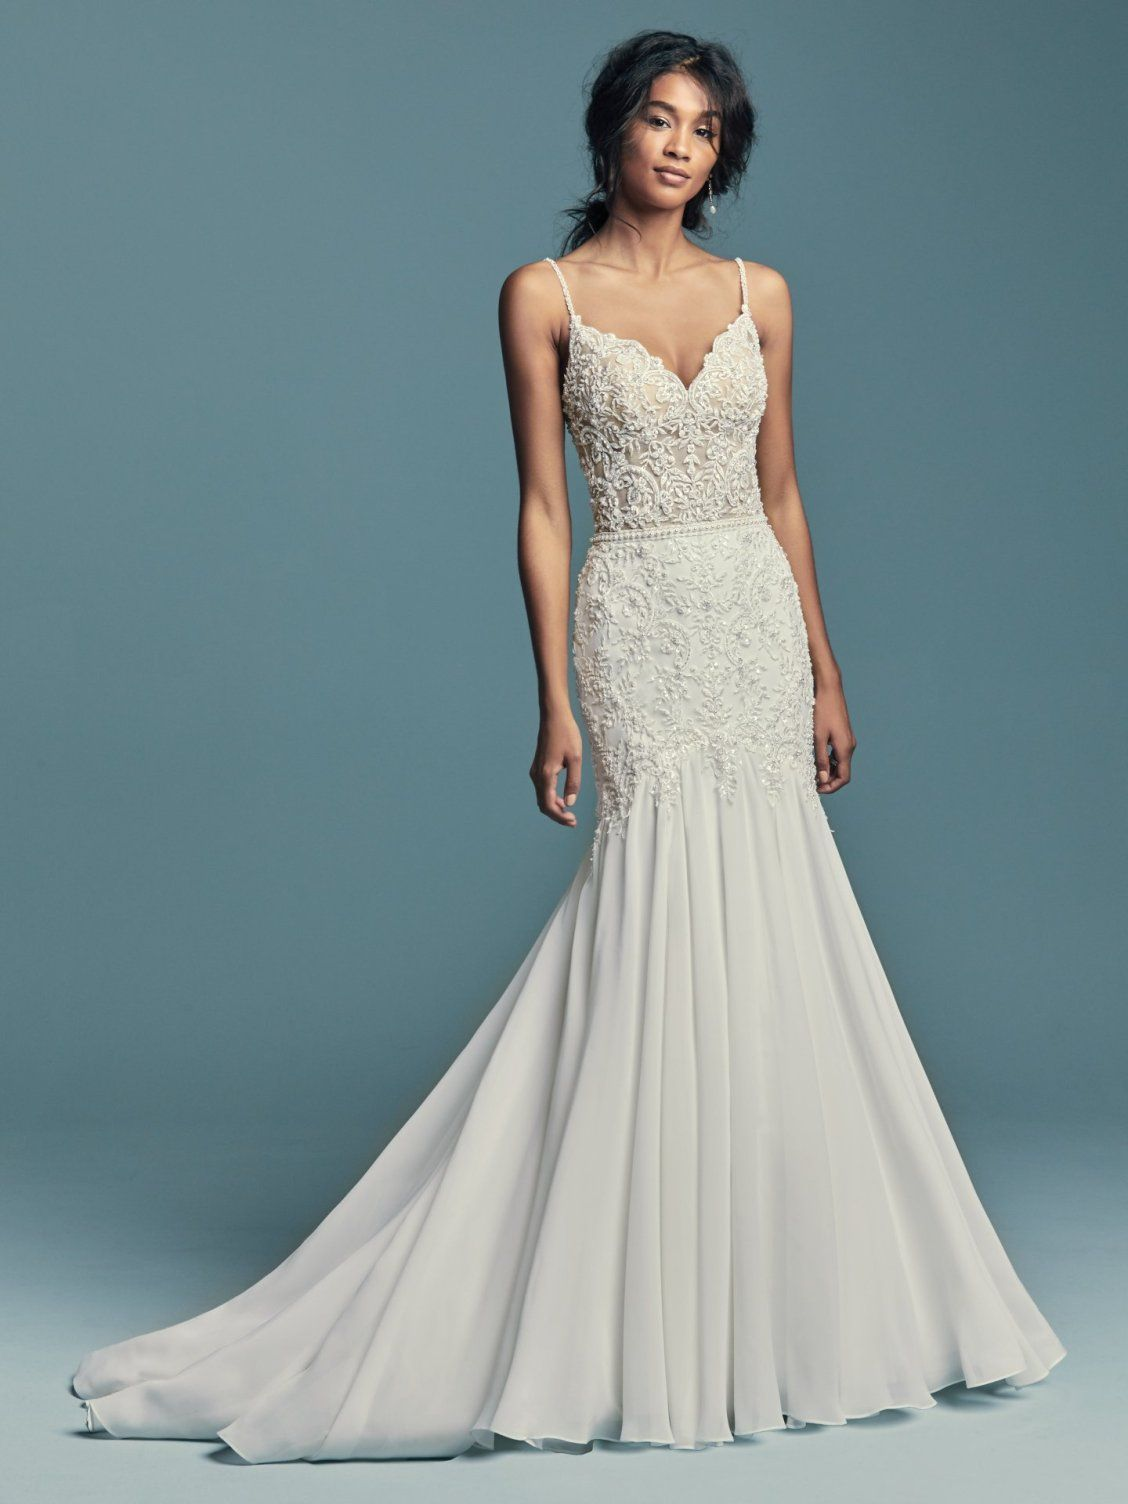 New Boho Wedding Dresses from the Lucienne Collection | Boho, Gowns ...